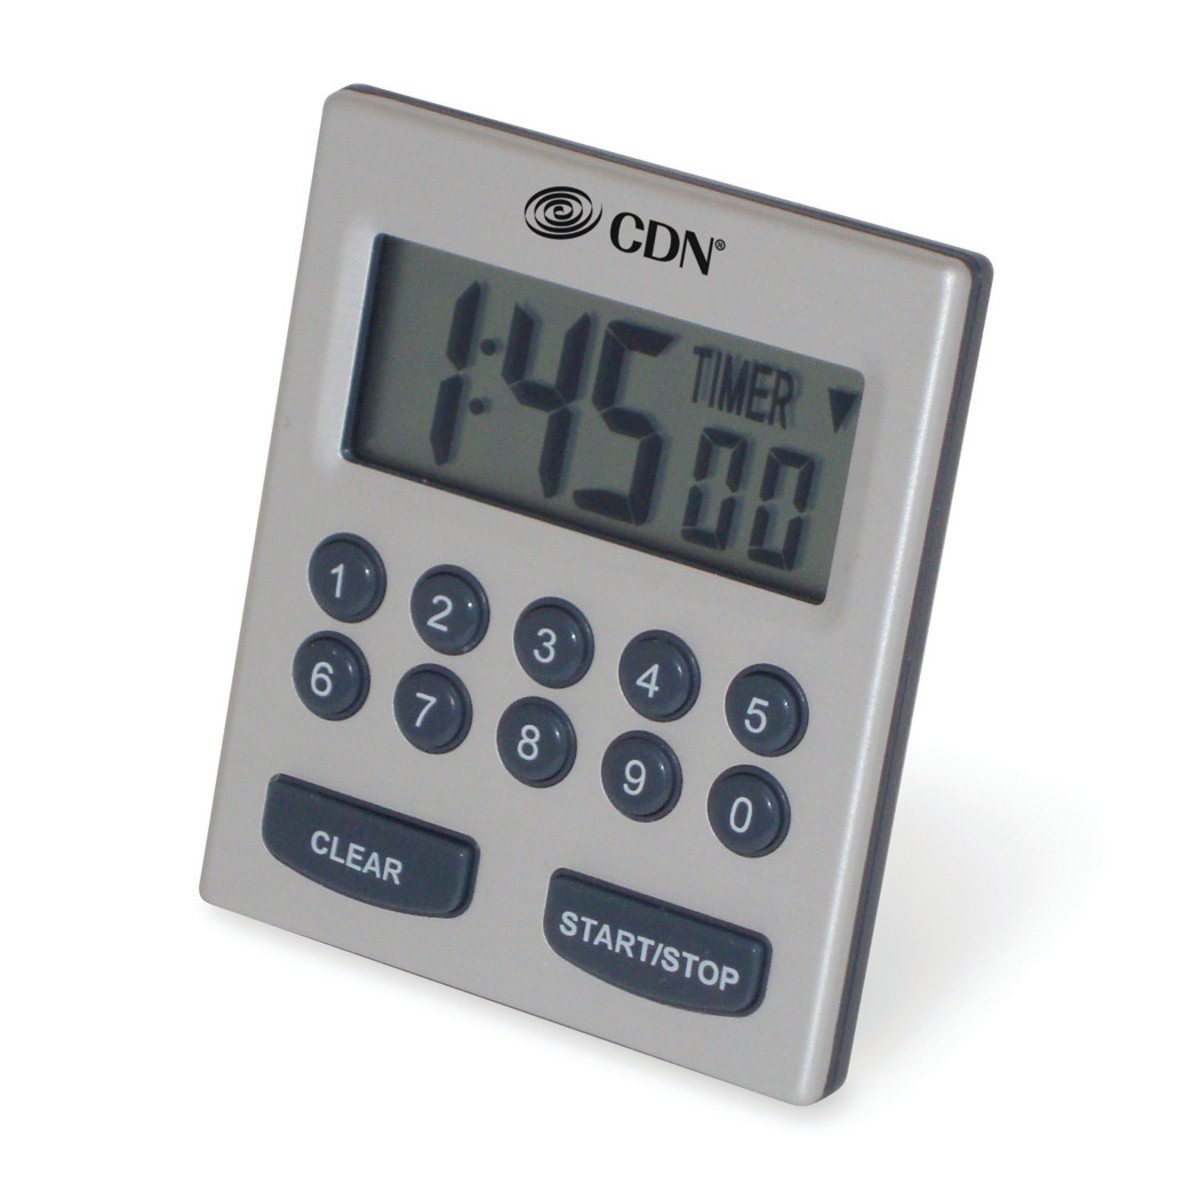 CDN CDN Direct Entry Timer